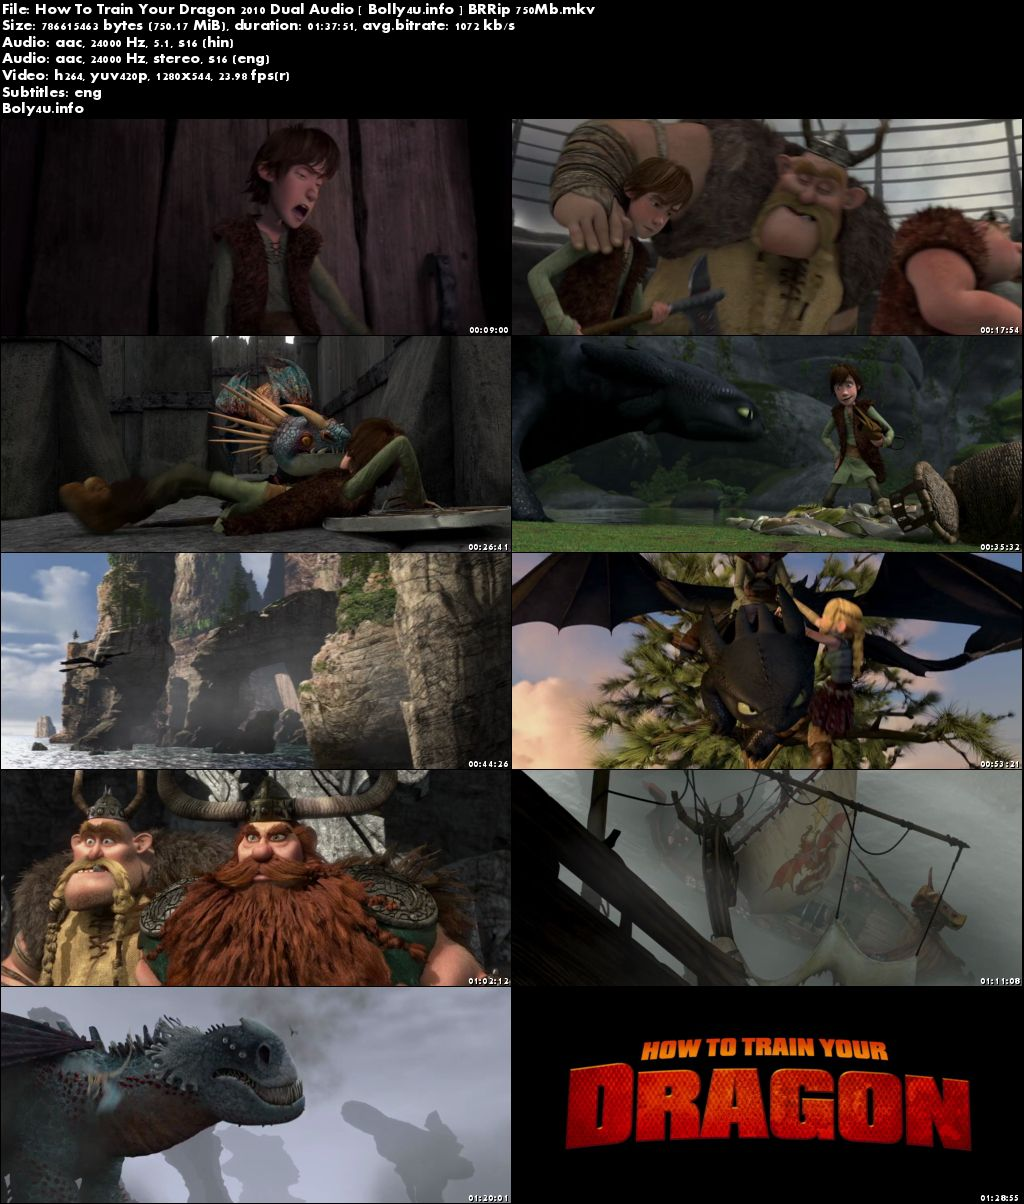 How to train your dragon 2010 brrip 300mb hindi dual audio 480p how to train your dragon 2010 brrip 300mb hindi dual audio 480p download ccuart Choice Image